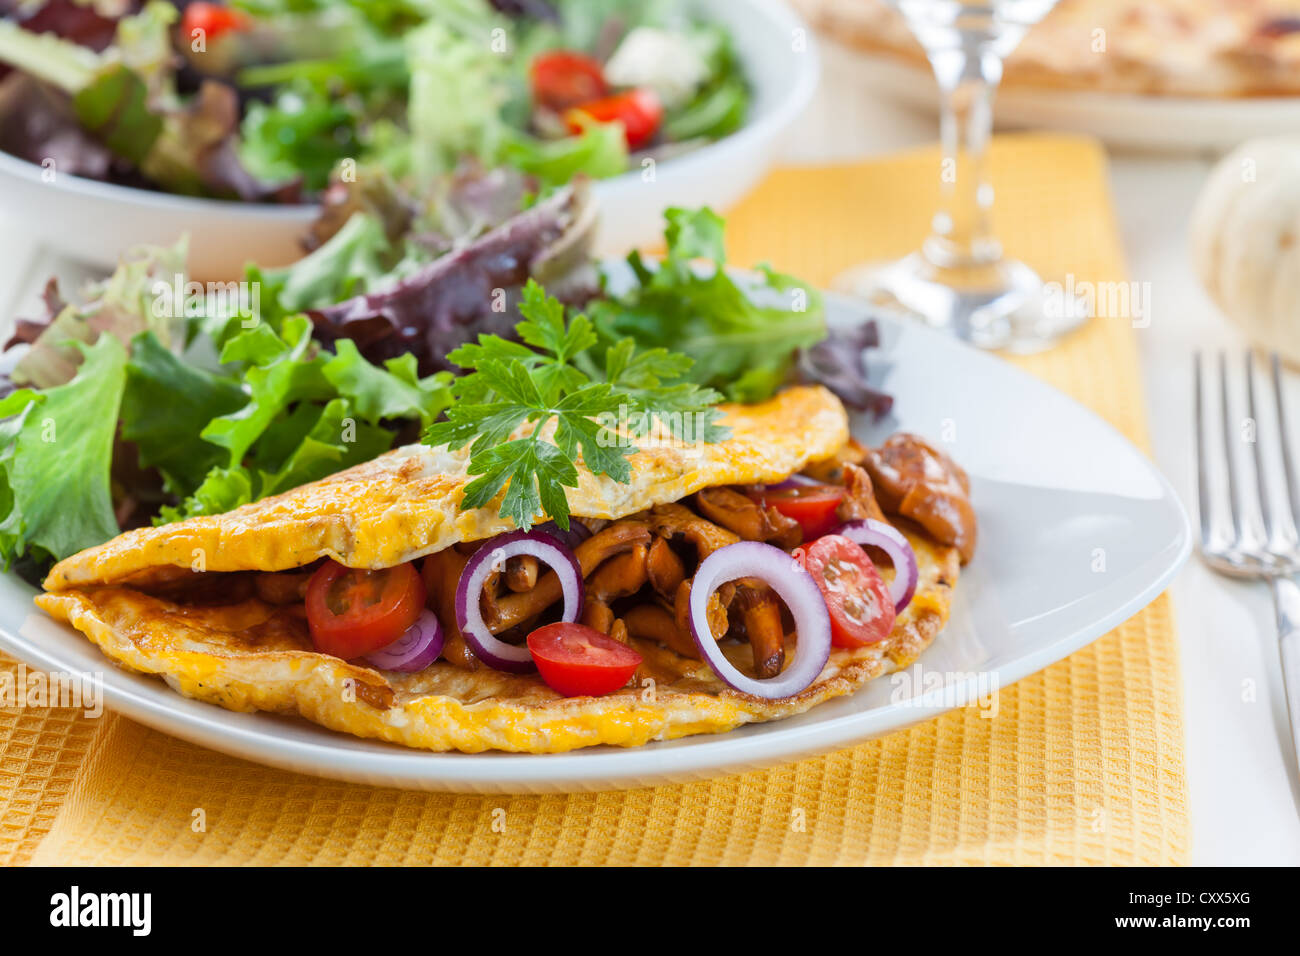 Omelet filled with chanterelle mushrooms and vegetable salad - Stock Image